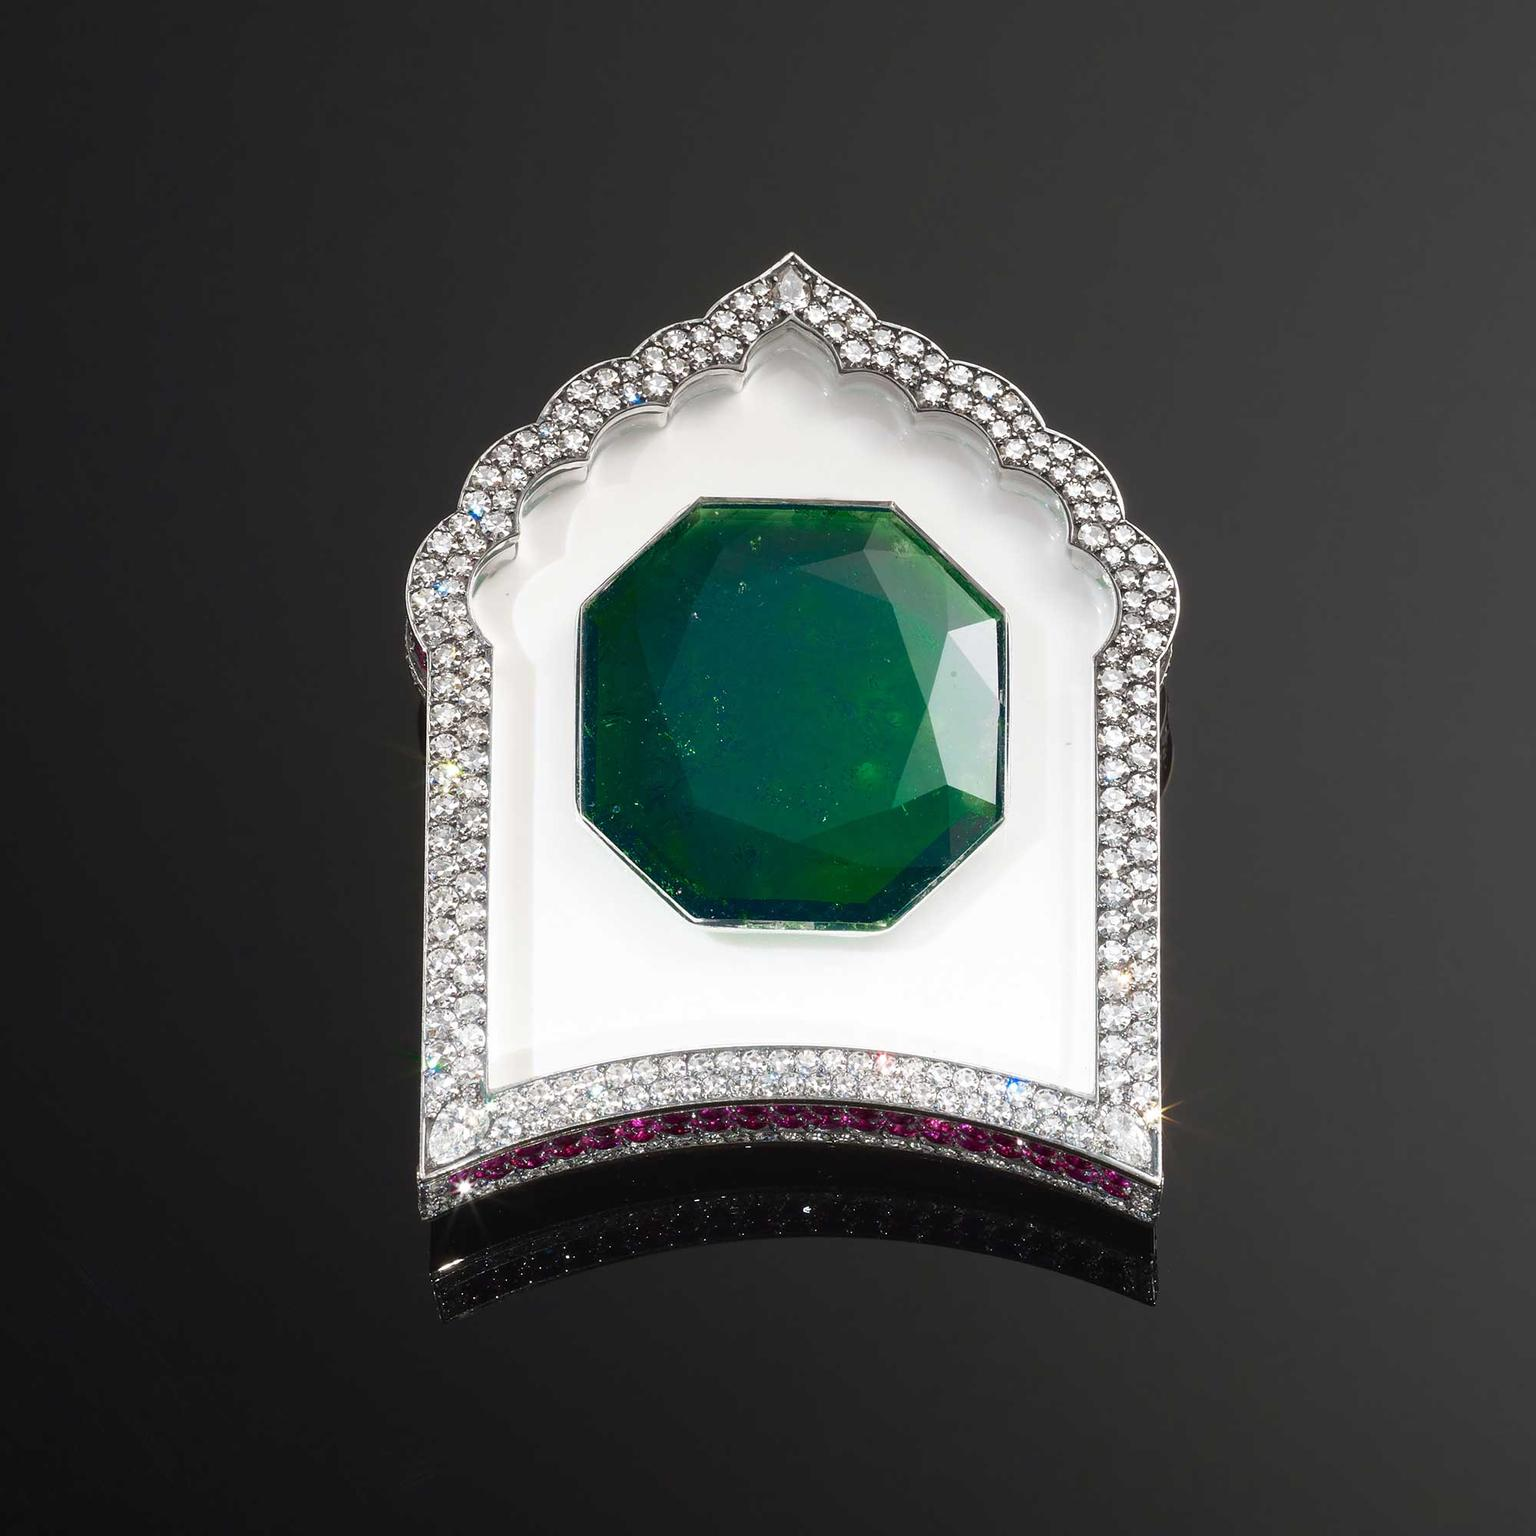 JAR emerald brooch, on show at the Bejewelled Treasures exhibition at the V&A